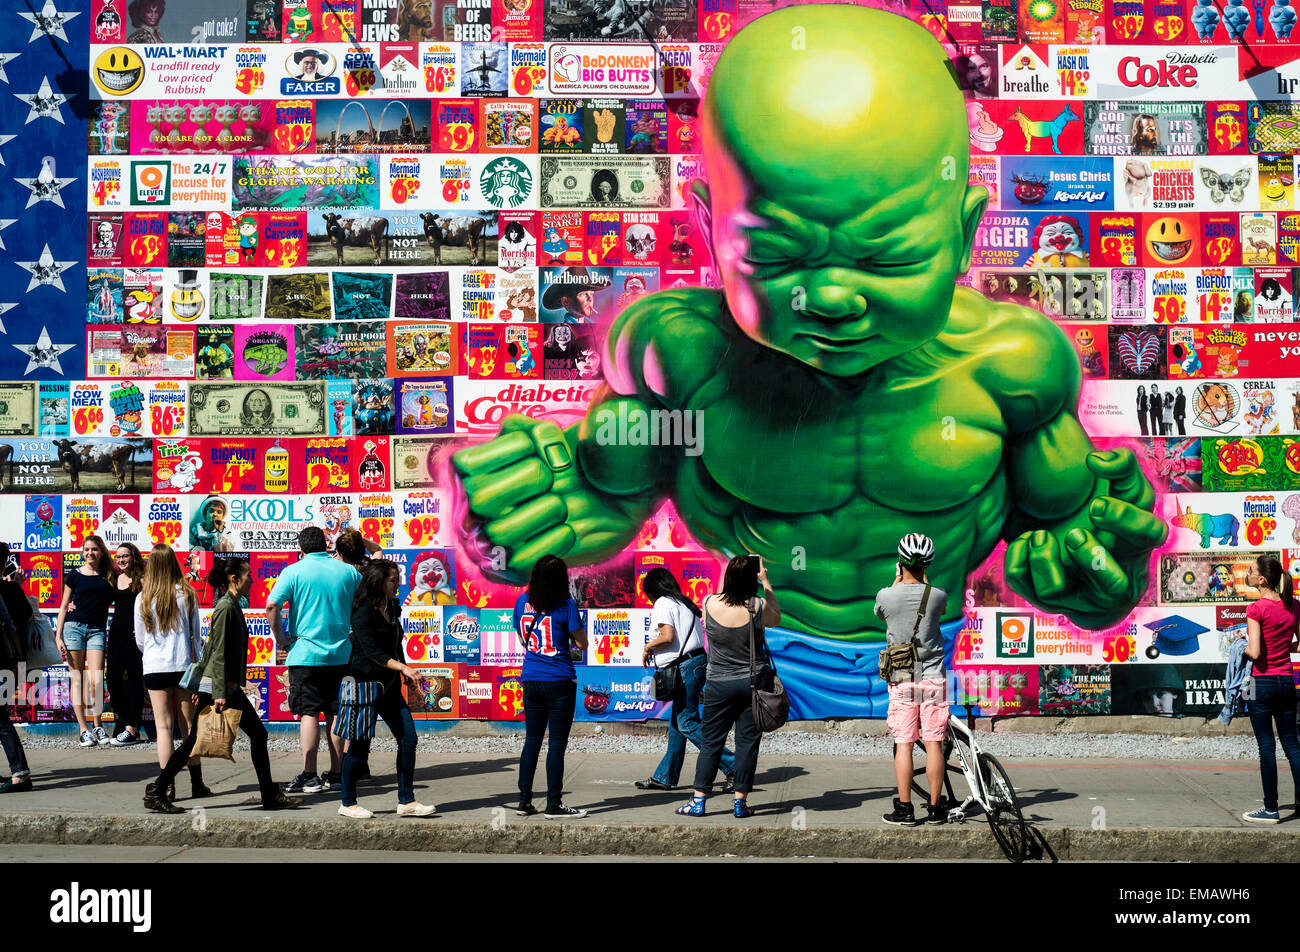 New York, USA 18 April 2016 - Bowery Mural featuring street artist Ron English with 'an American flag composed - Stock Image